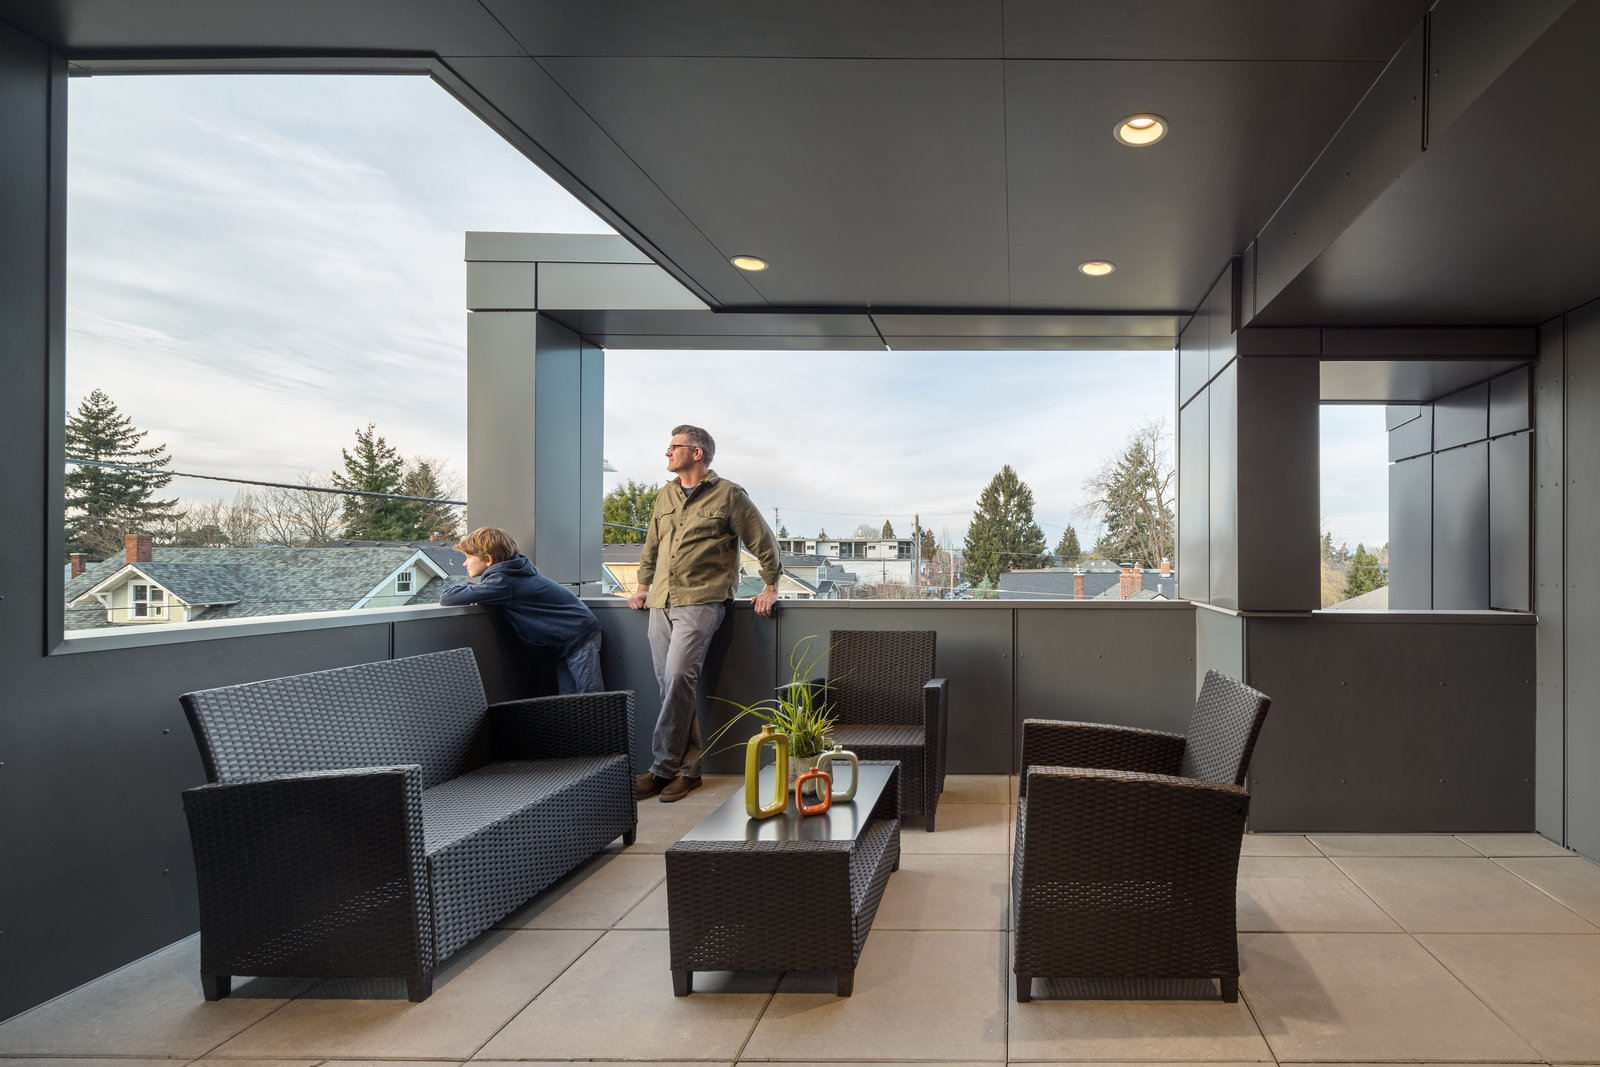 Outdoor, Rooftop, Concrete Patio, Porch, Deck, Small Patio, Porch, Deck, and Tile Patio, Porch, Deck The corner view deck with outdoor living   Lightbox 23 by Steelhead Architecture